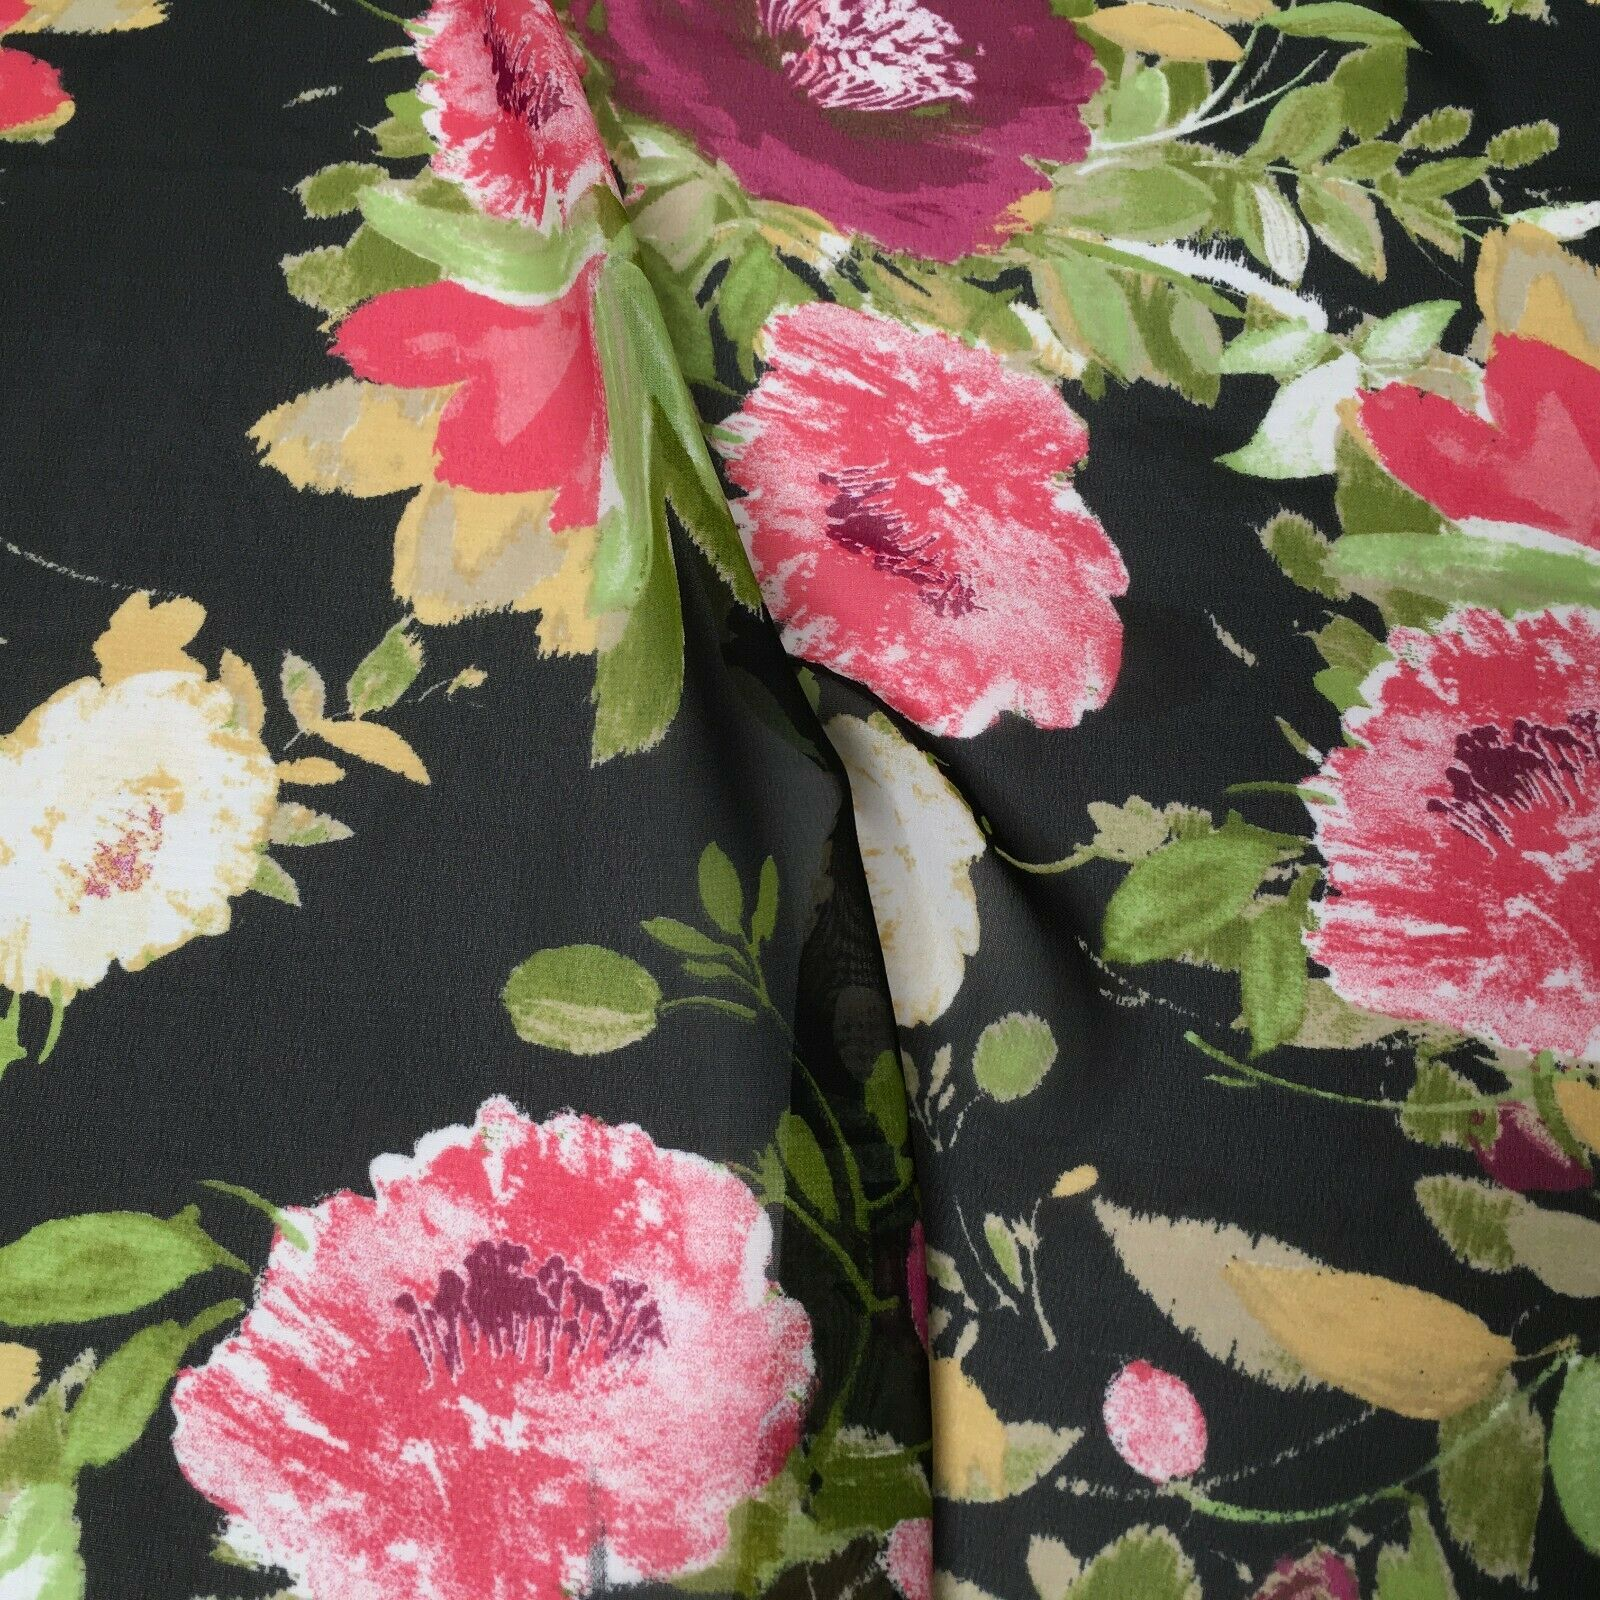 Black floral printed Crepe chiffon Dress Fabric MK1190-37 Mtex